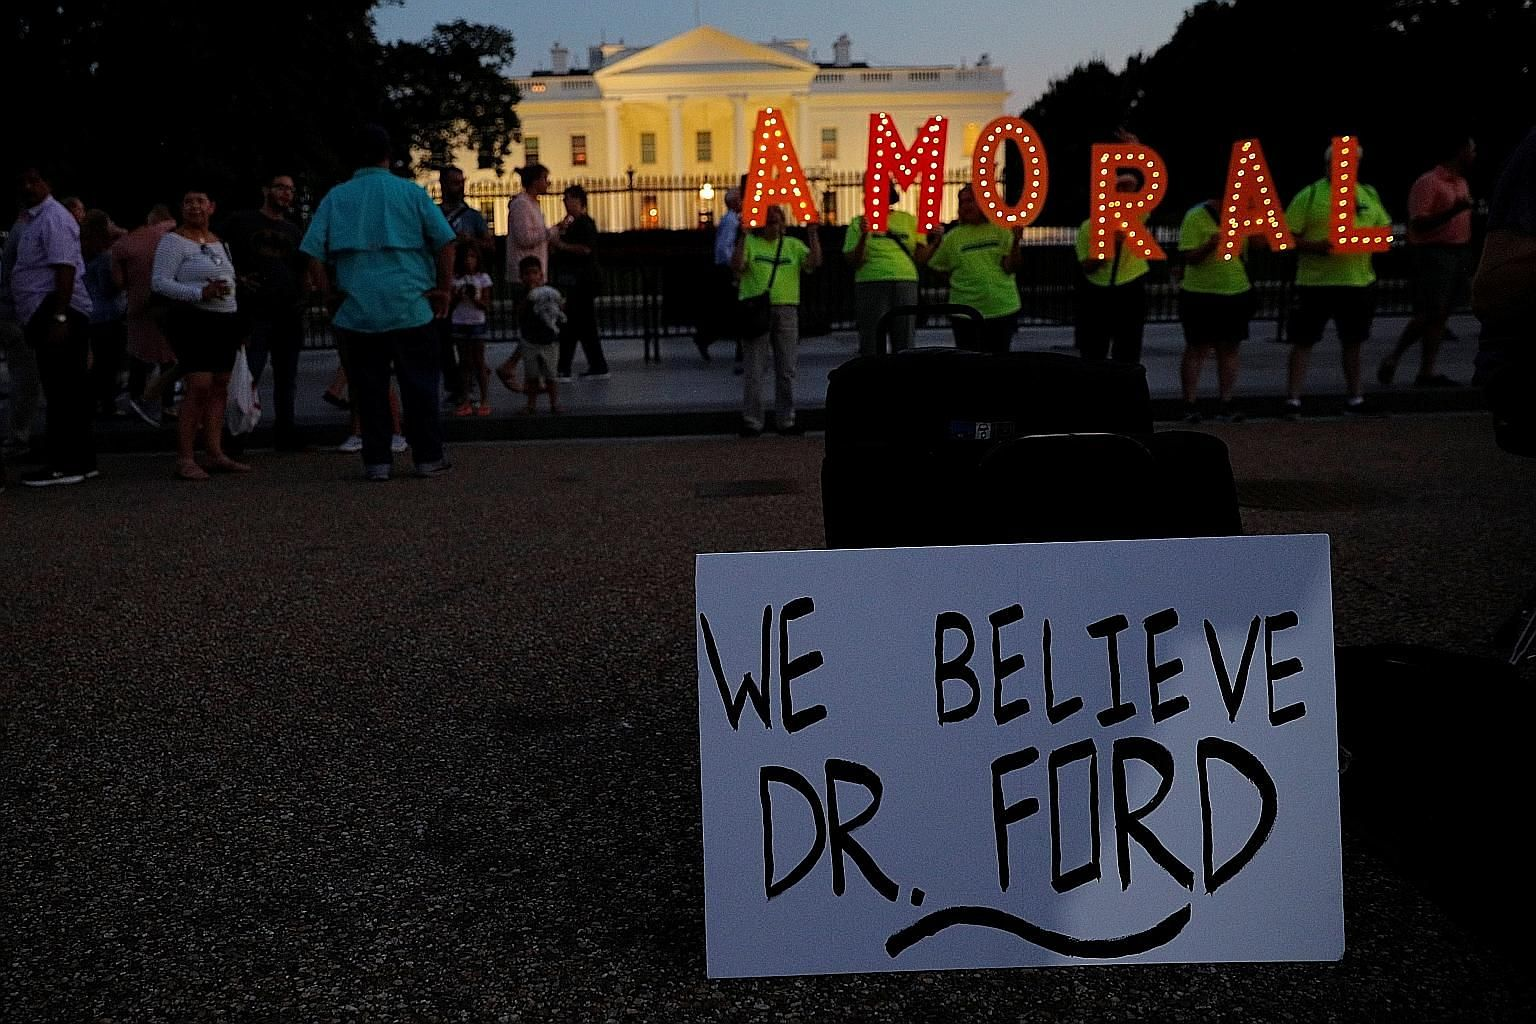 Protesters outside the White House last week with a sign supporting Dr Christine Blasey Ford, who has accused Judge Brett Kavanaugh (above), President Donald Trump's Supreme Court nominee, of sexually assaulting her in the 1980s when they were teenag